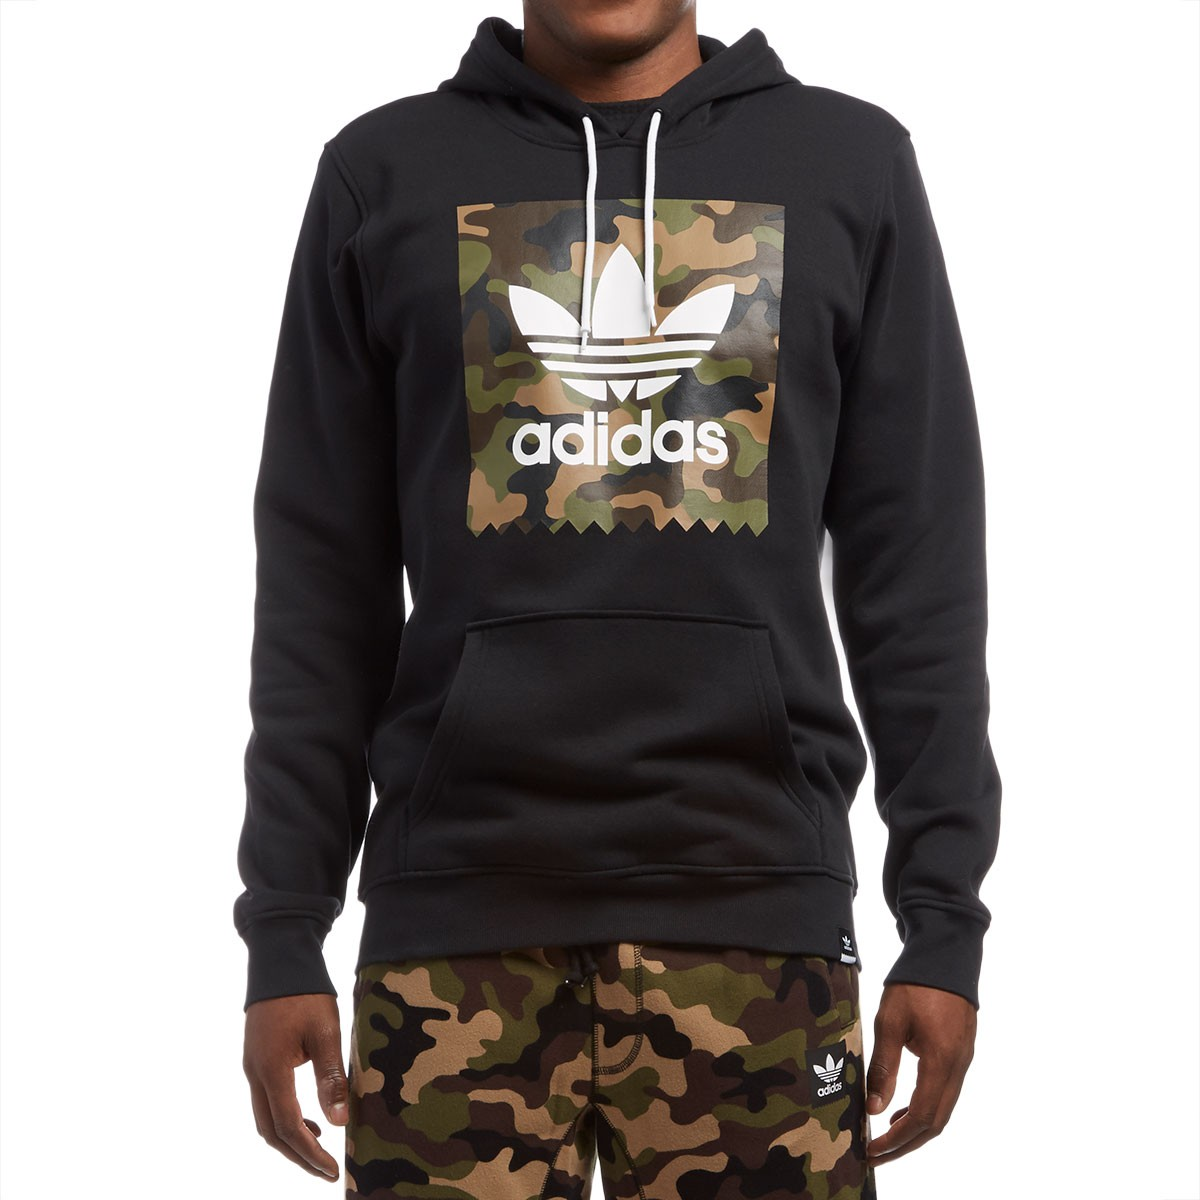 adidas camo long sleeve t shirt